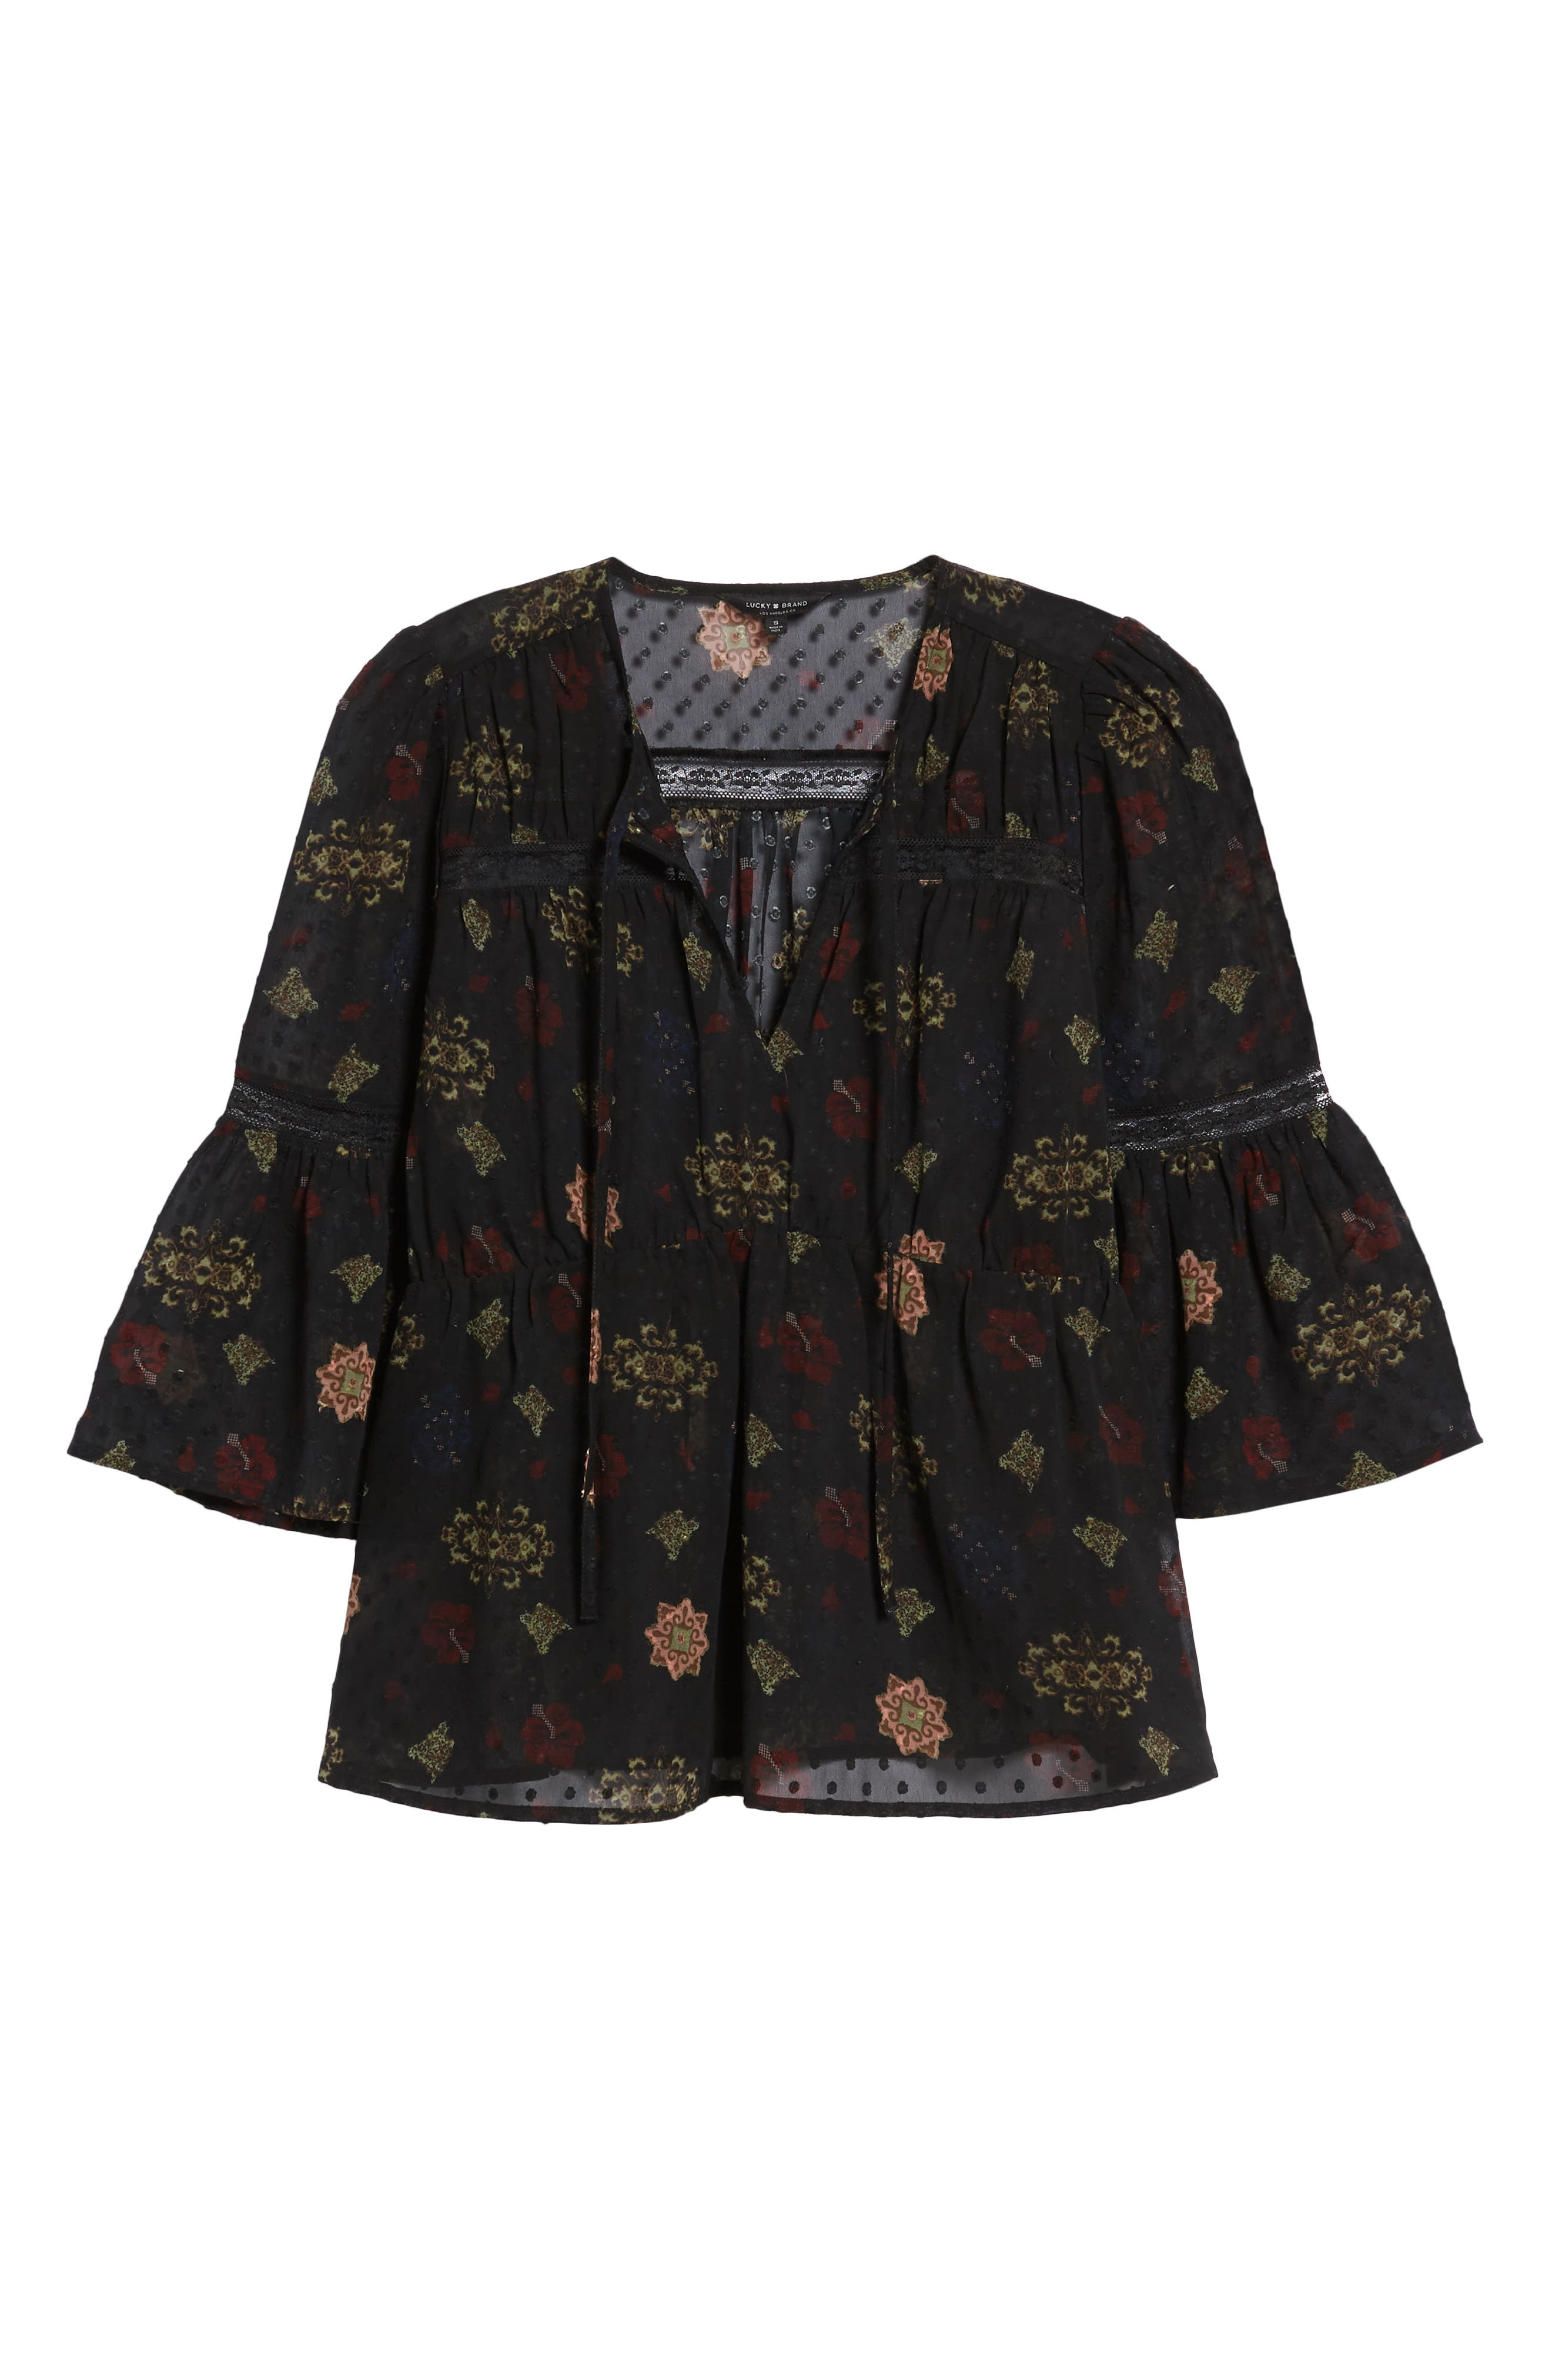 Swiss Dot Sheer Floral Blouse,                             Alternate thumbnail 6, color,                             001